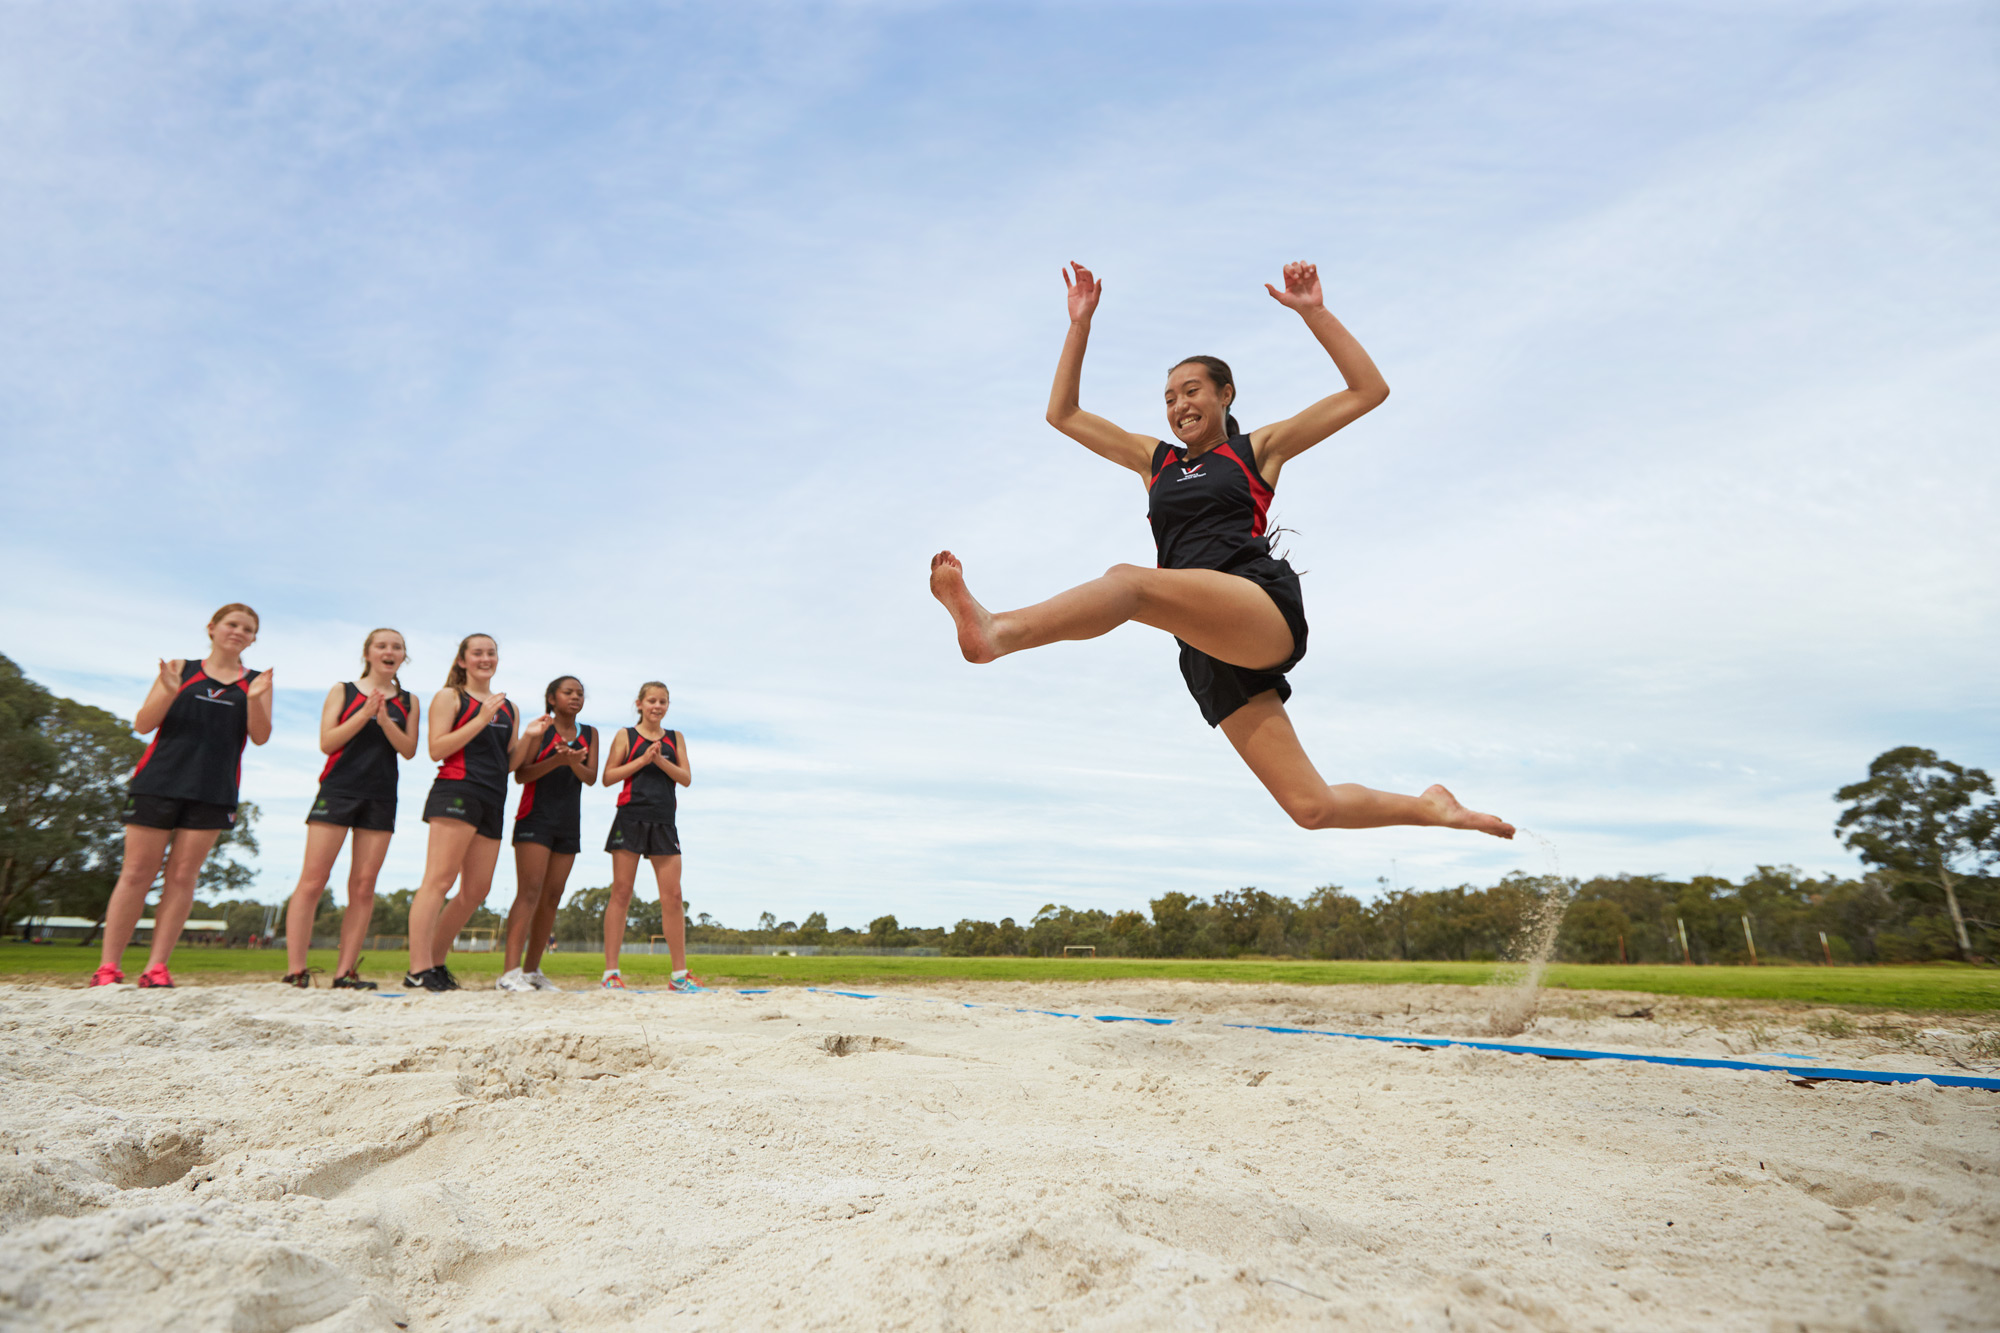 A Warwick Senior High School students participates in long jump while her peers watch and clap her on